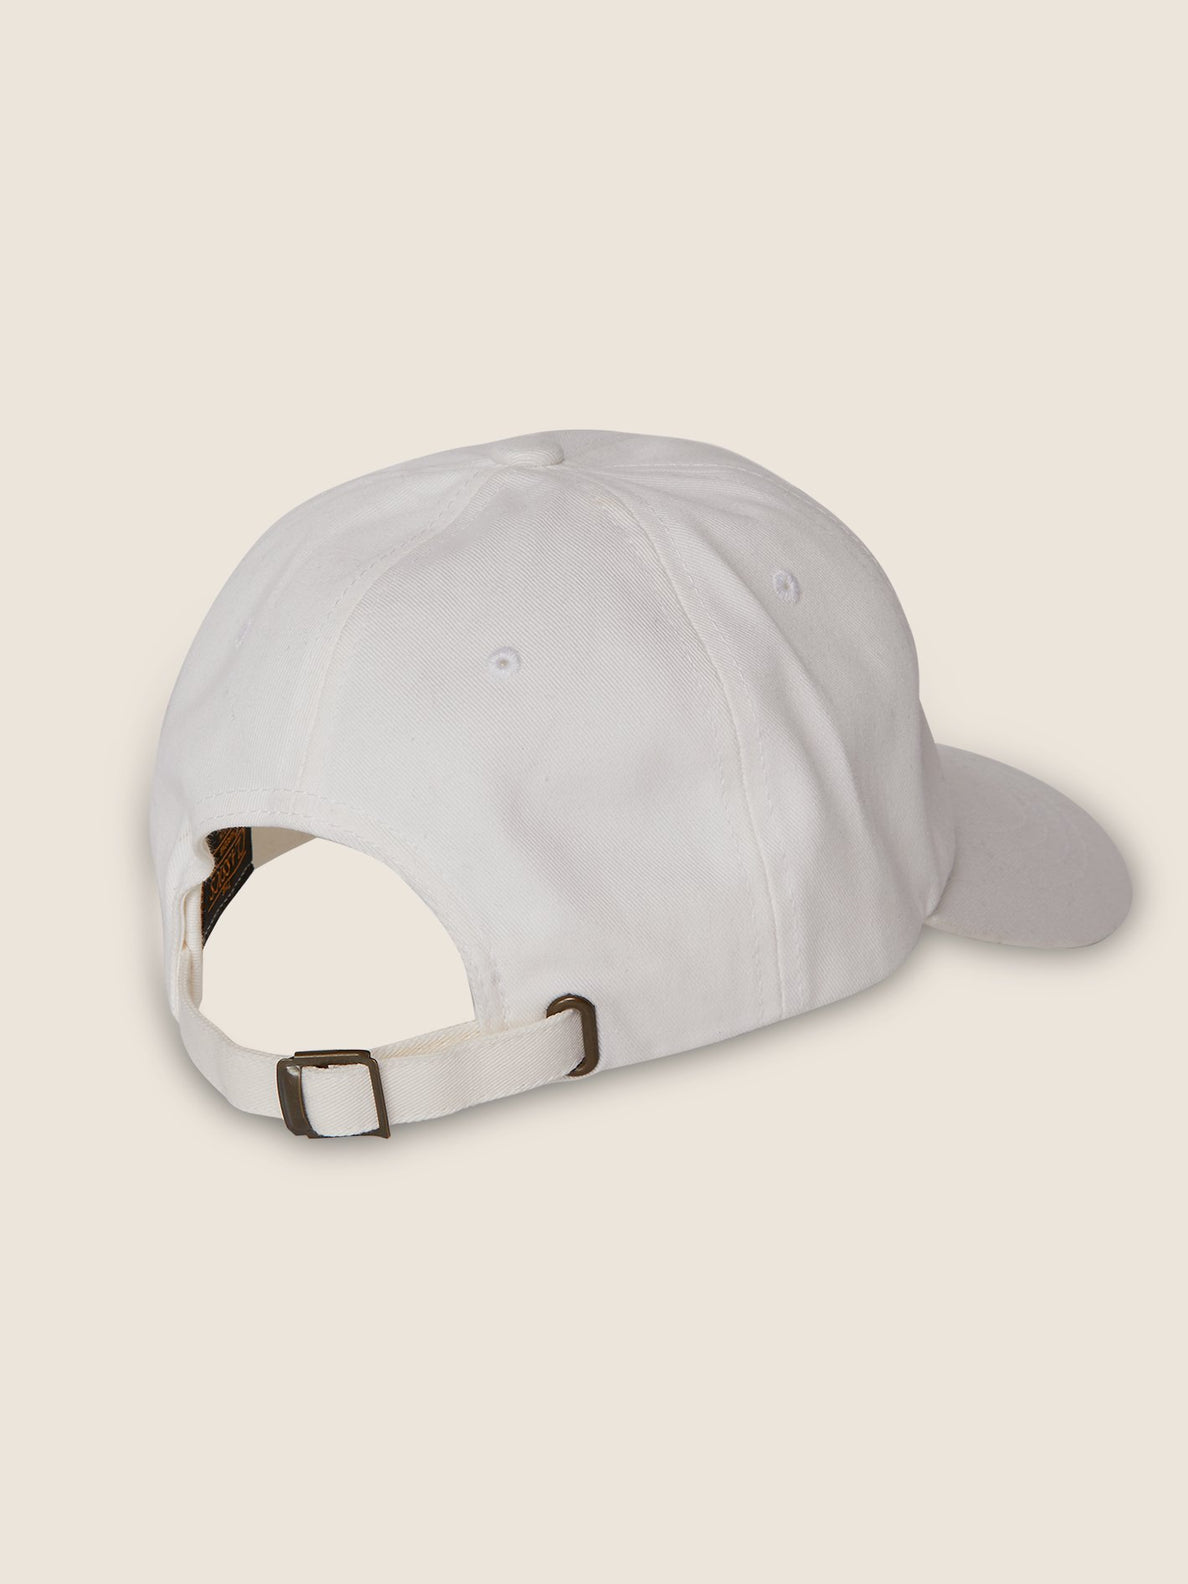 New Shield Dad Hat In White, Back View